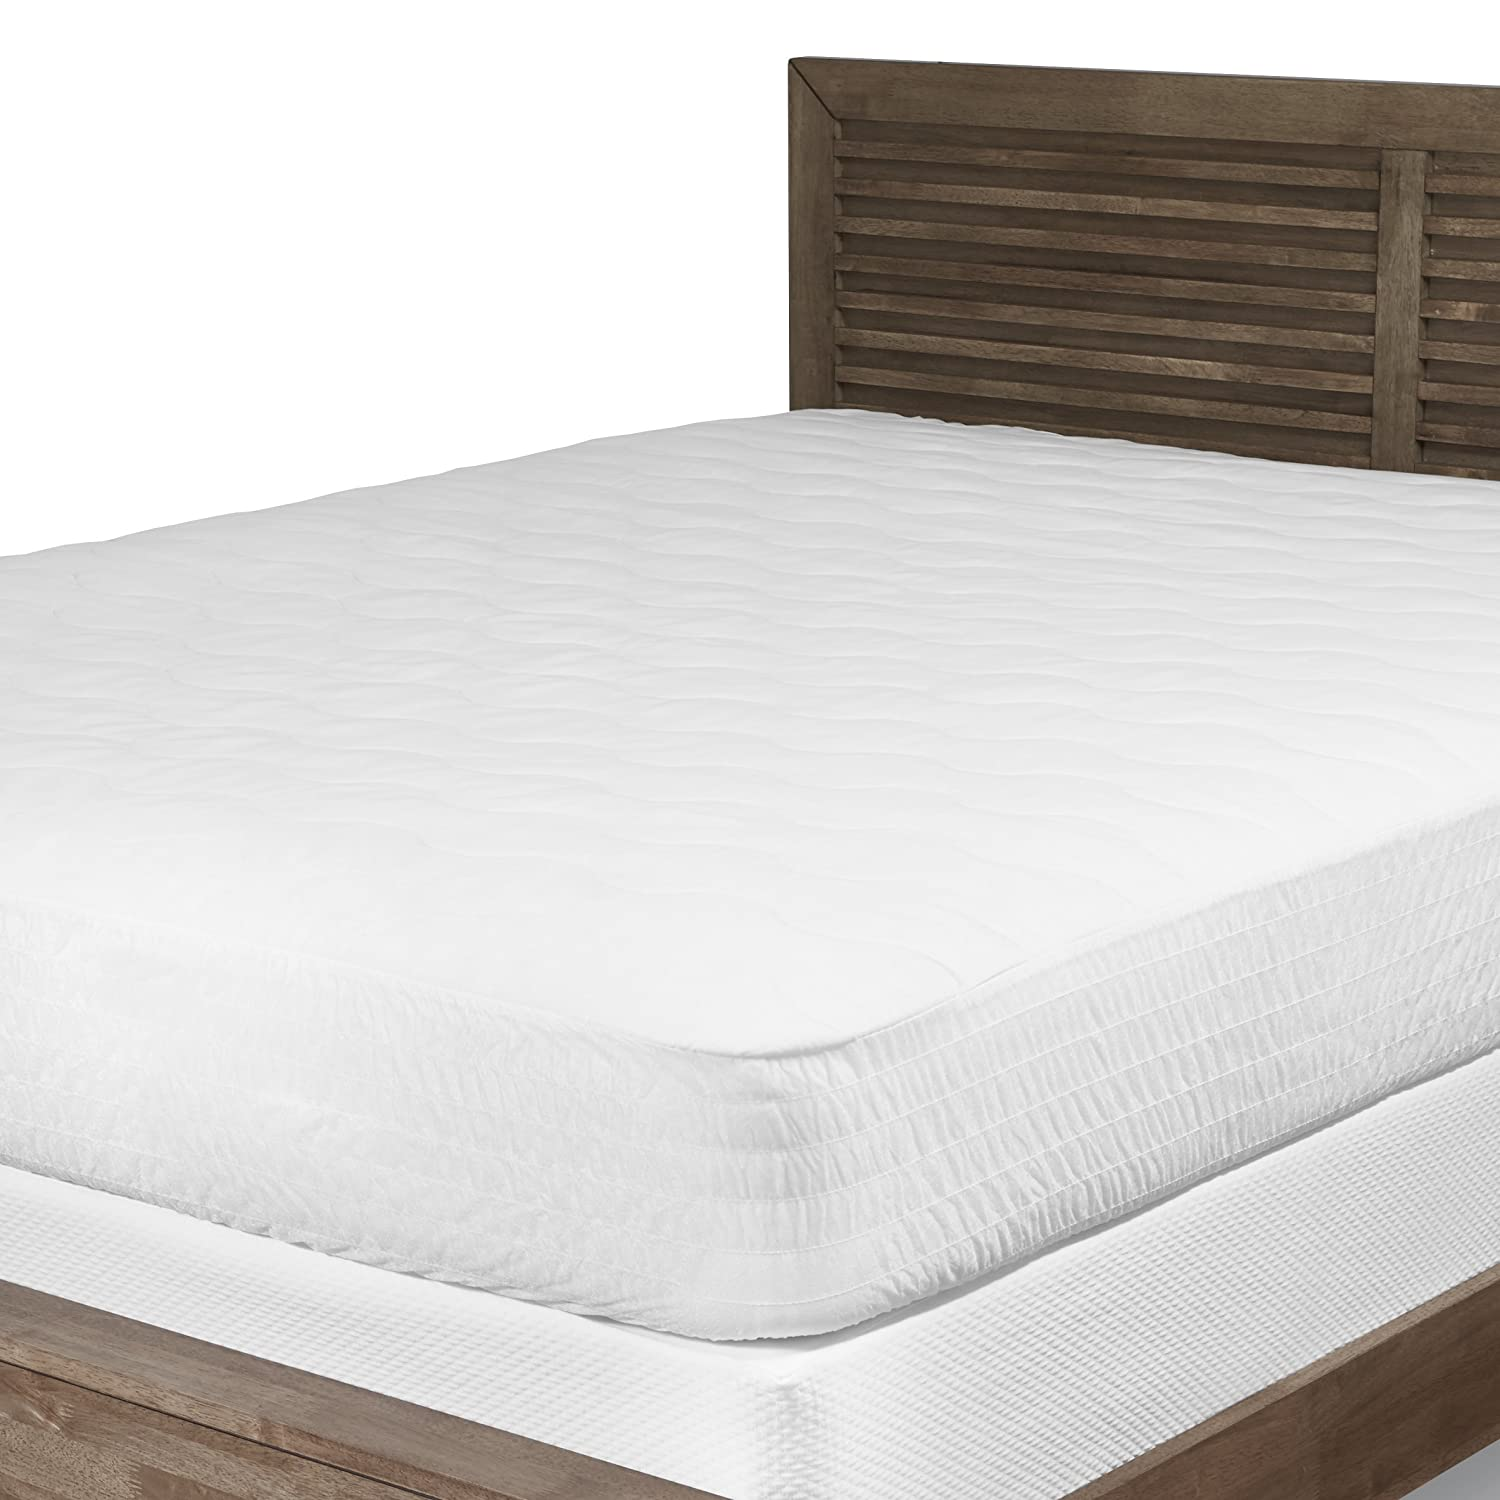 tuddal ikea is products white since gb it home packed roll topper mattresses standard easy en to mattress toppers pad double bring art